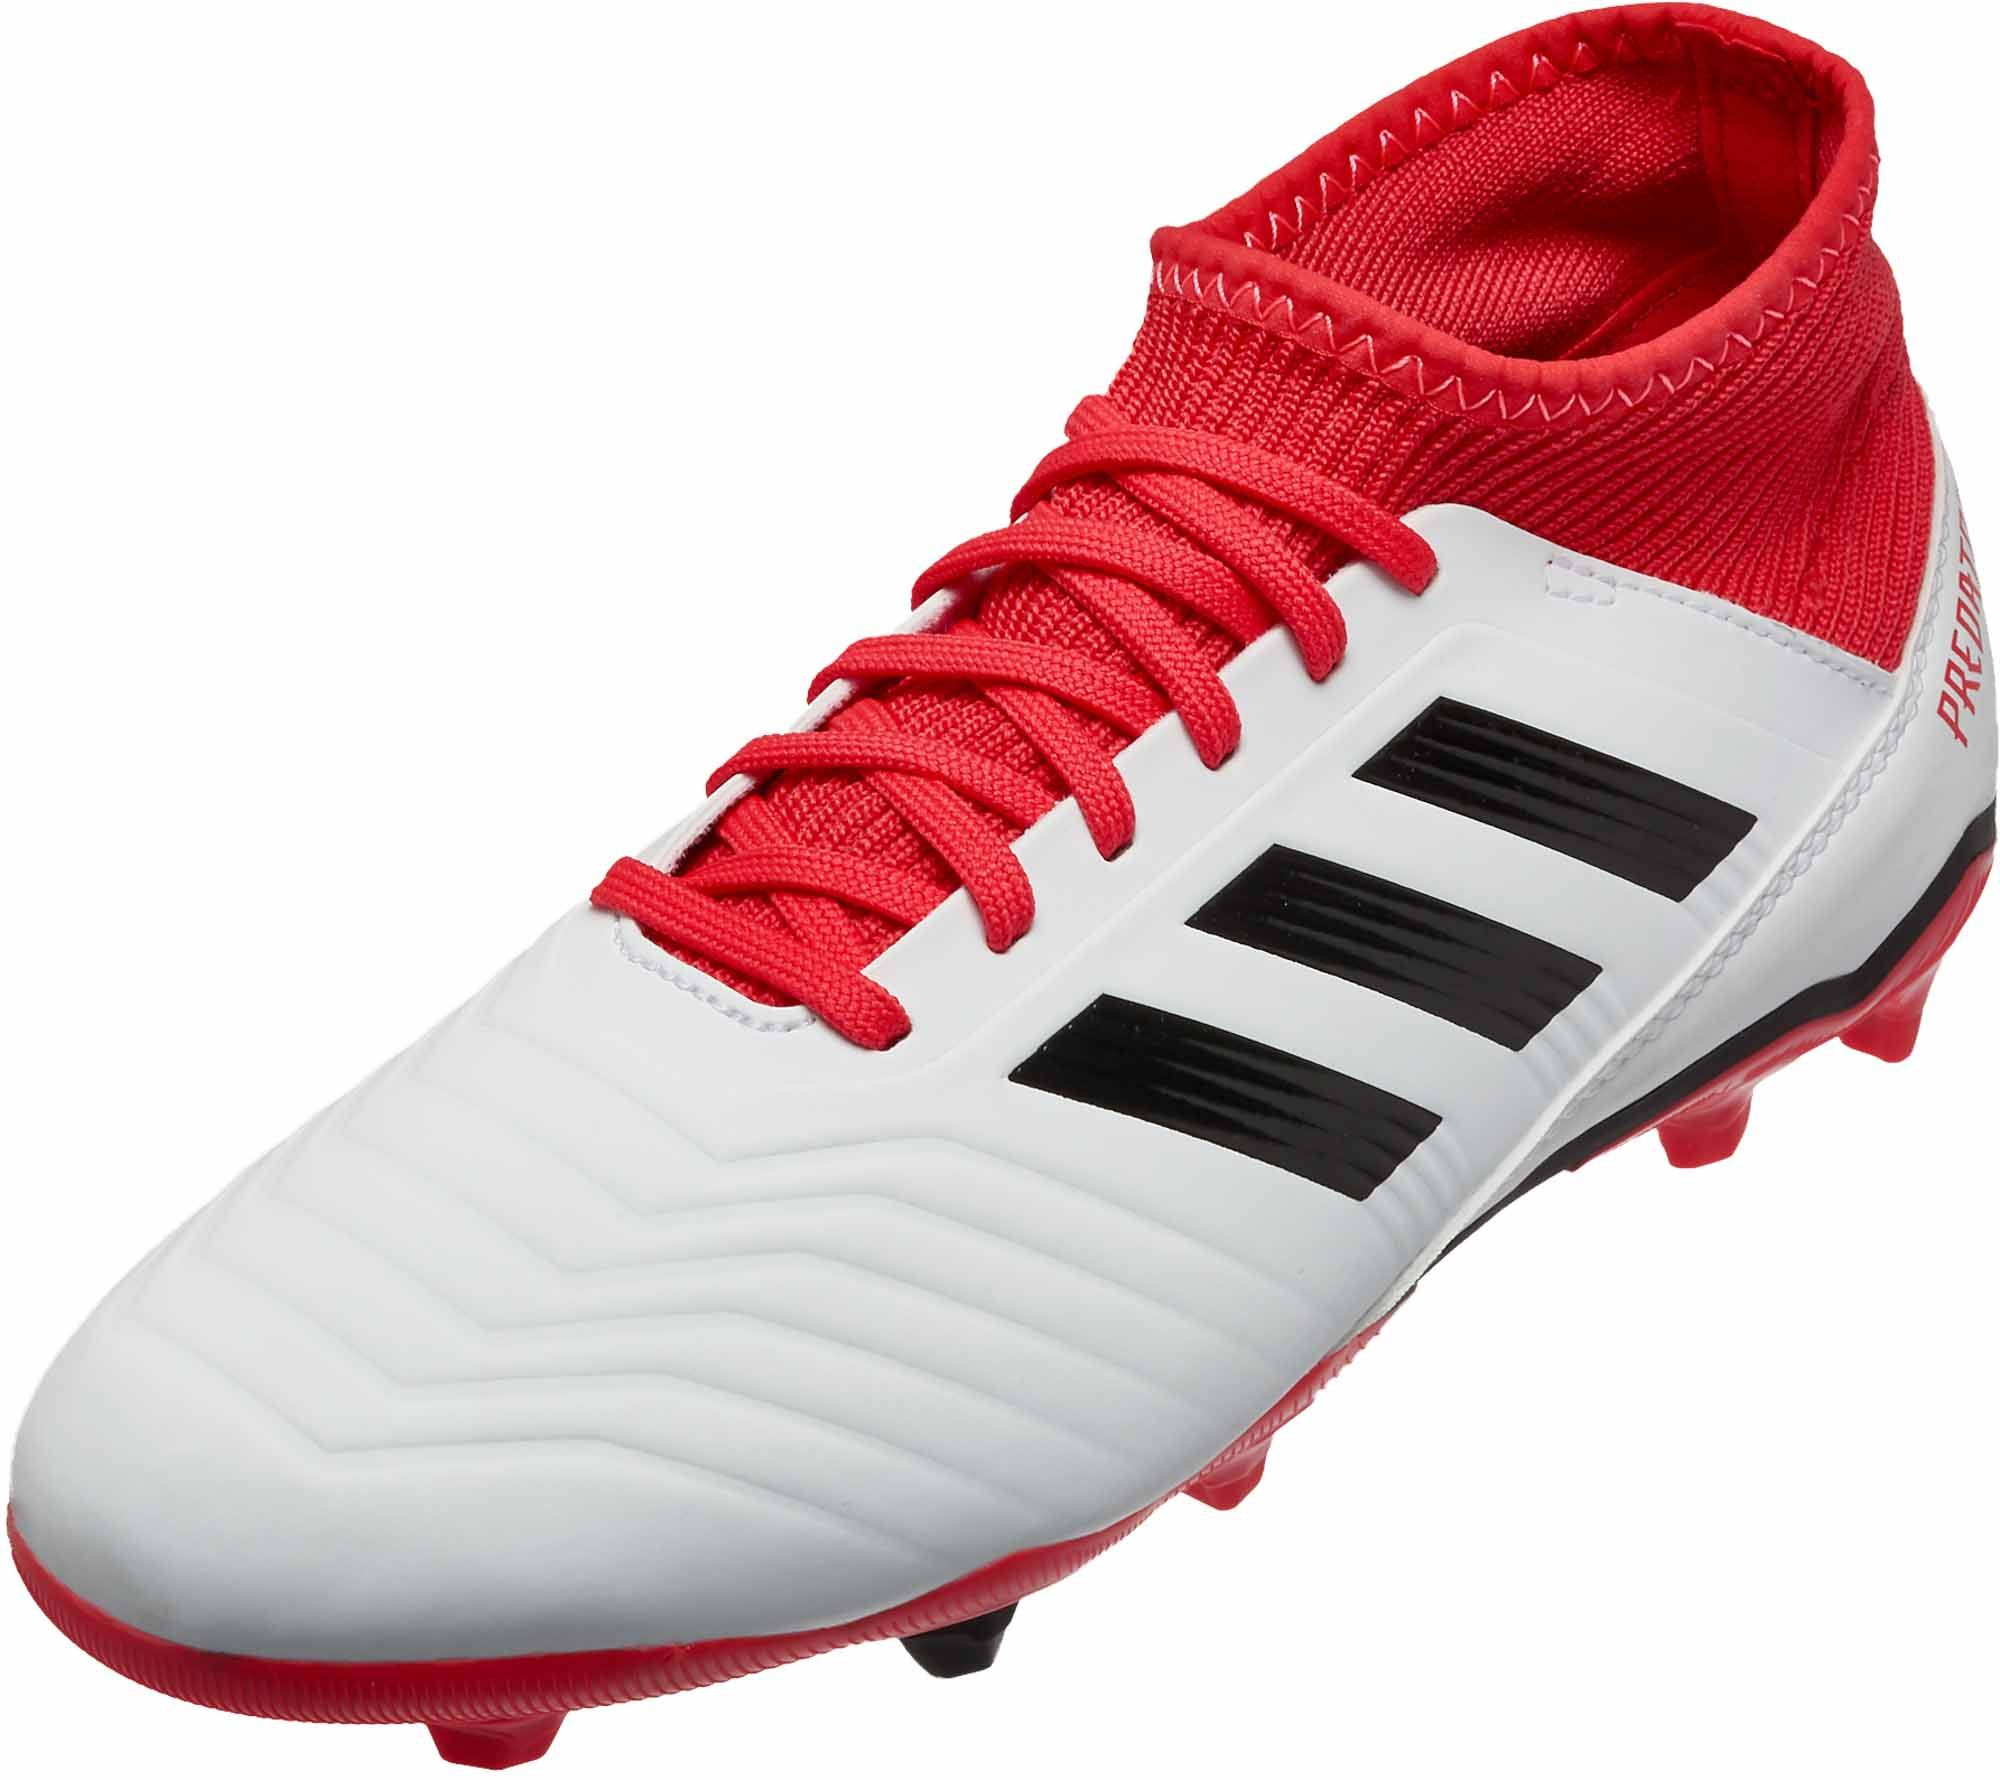 reputable site dfdd5 c6cff Kids adidas Predator 18.3 FG Soccer Cleats. Buy them at SoccerPro.